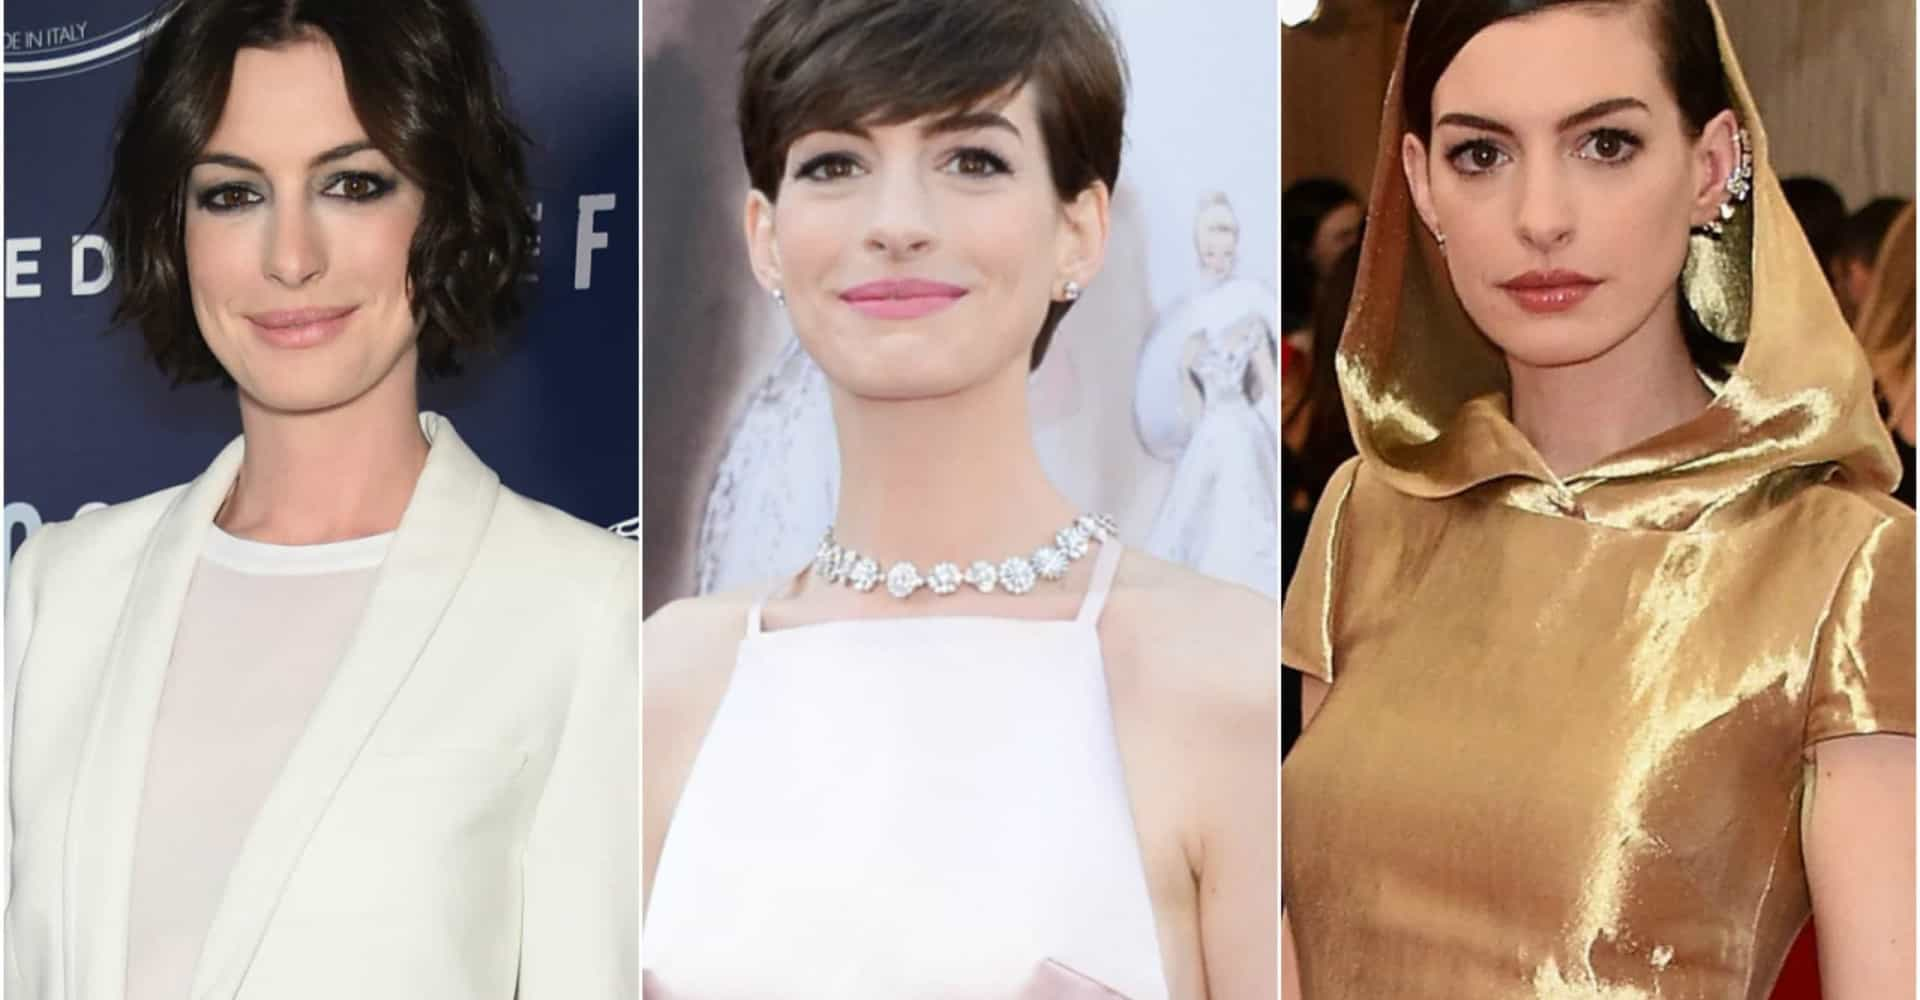 The unmistakable style of Anne Hathaway